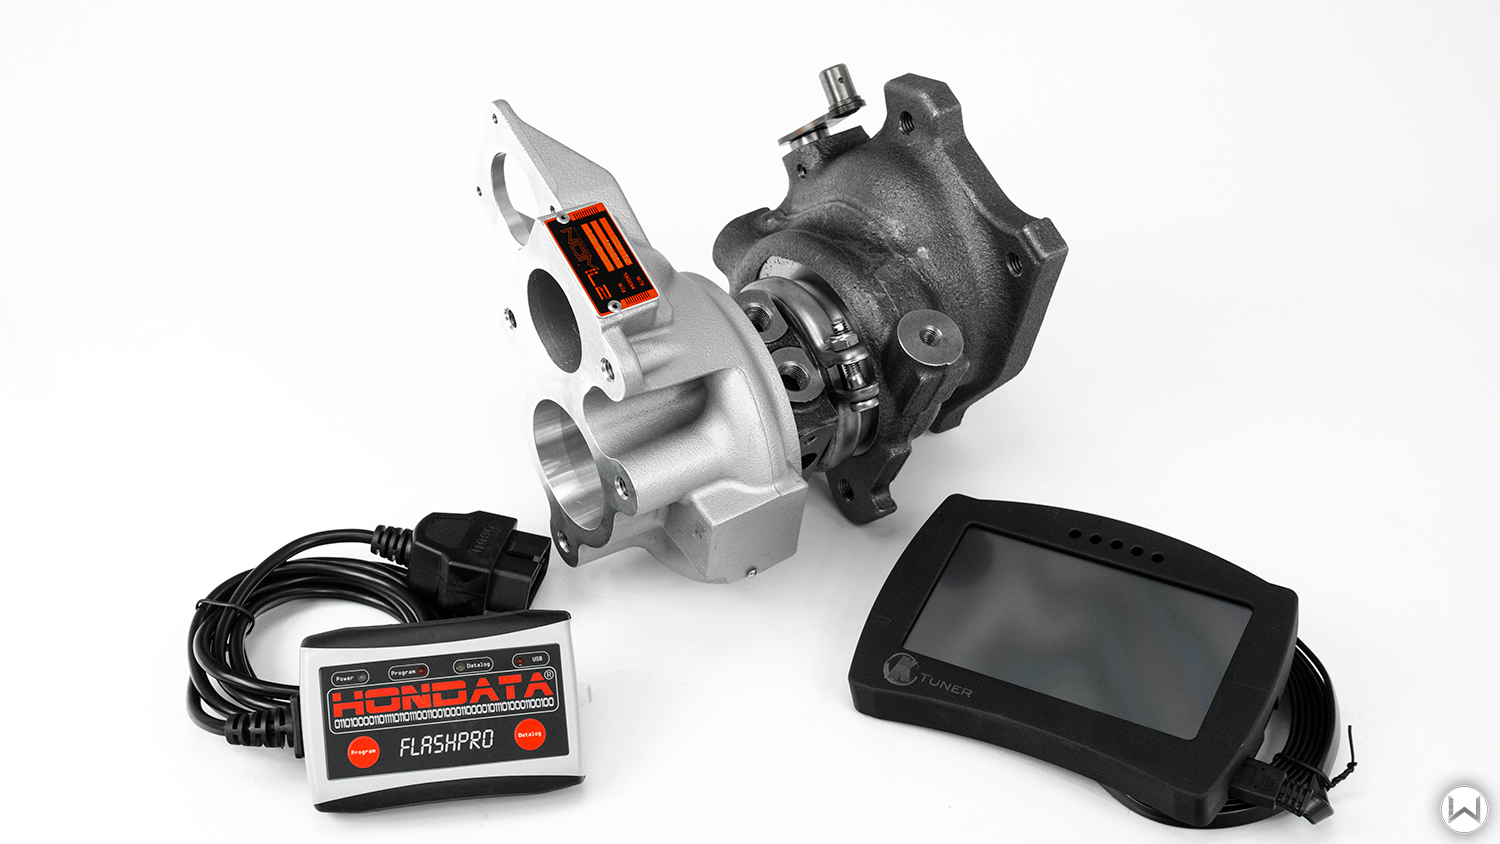 Base calibrations for the W1 will soon be available for both major tuning platforms for the 10th generation Honda Civic